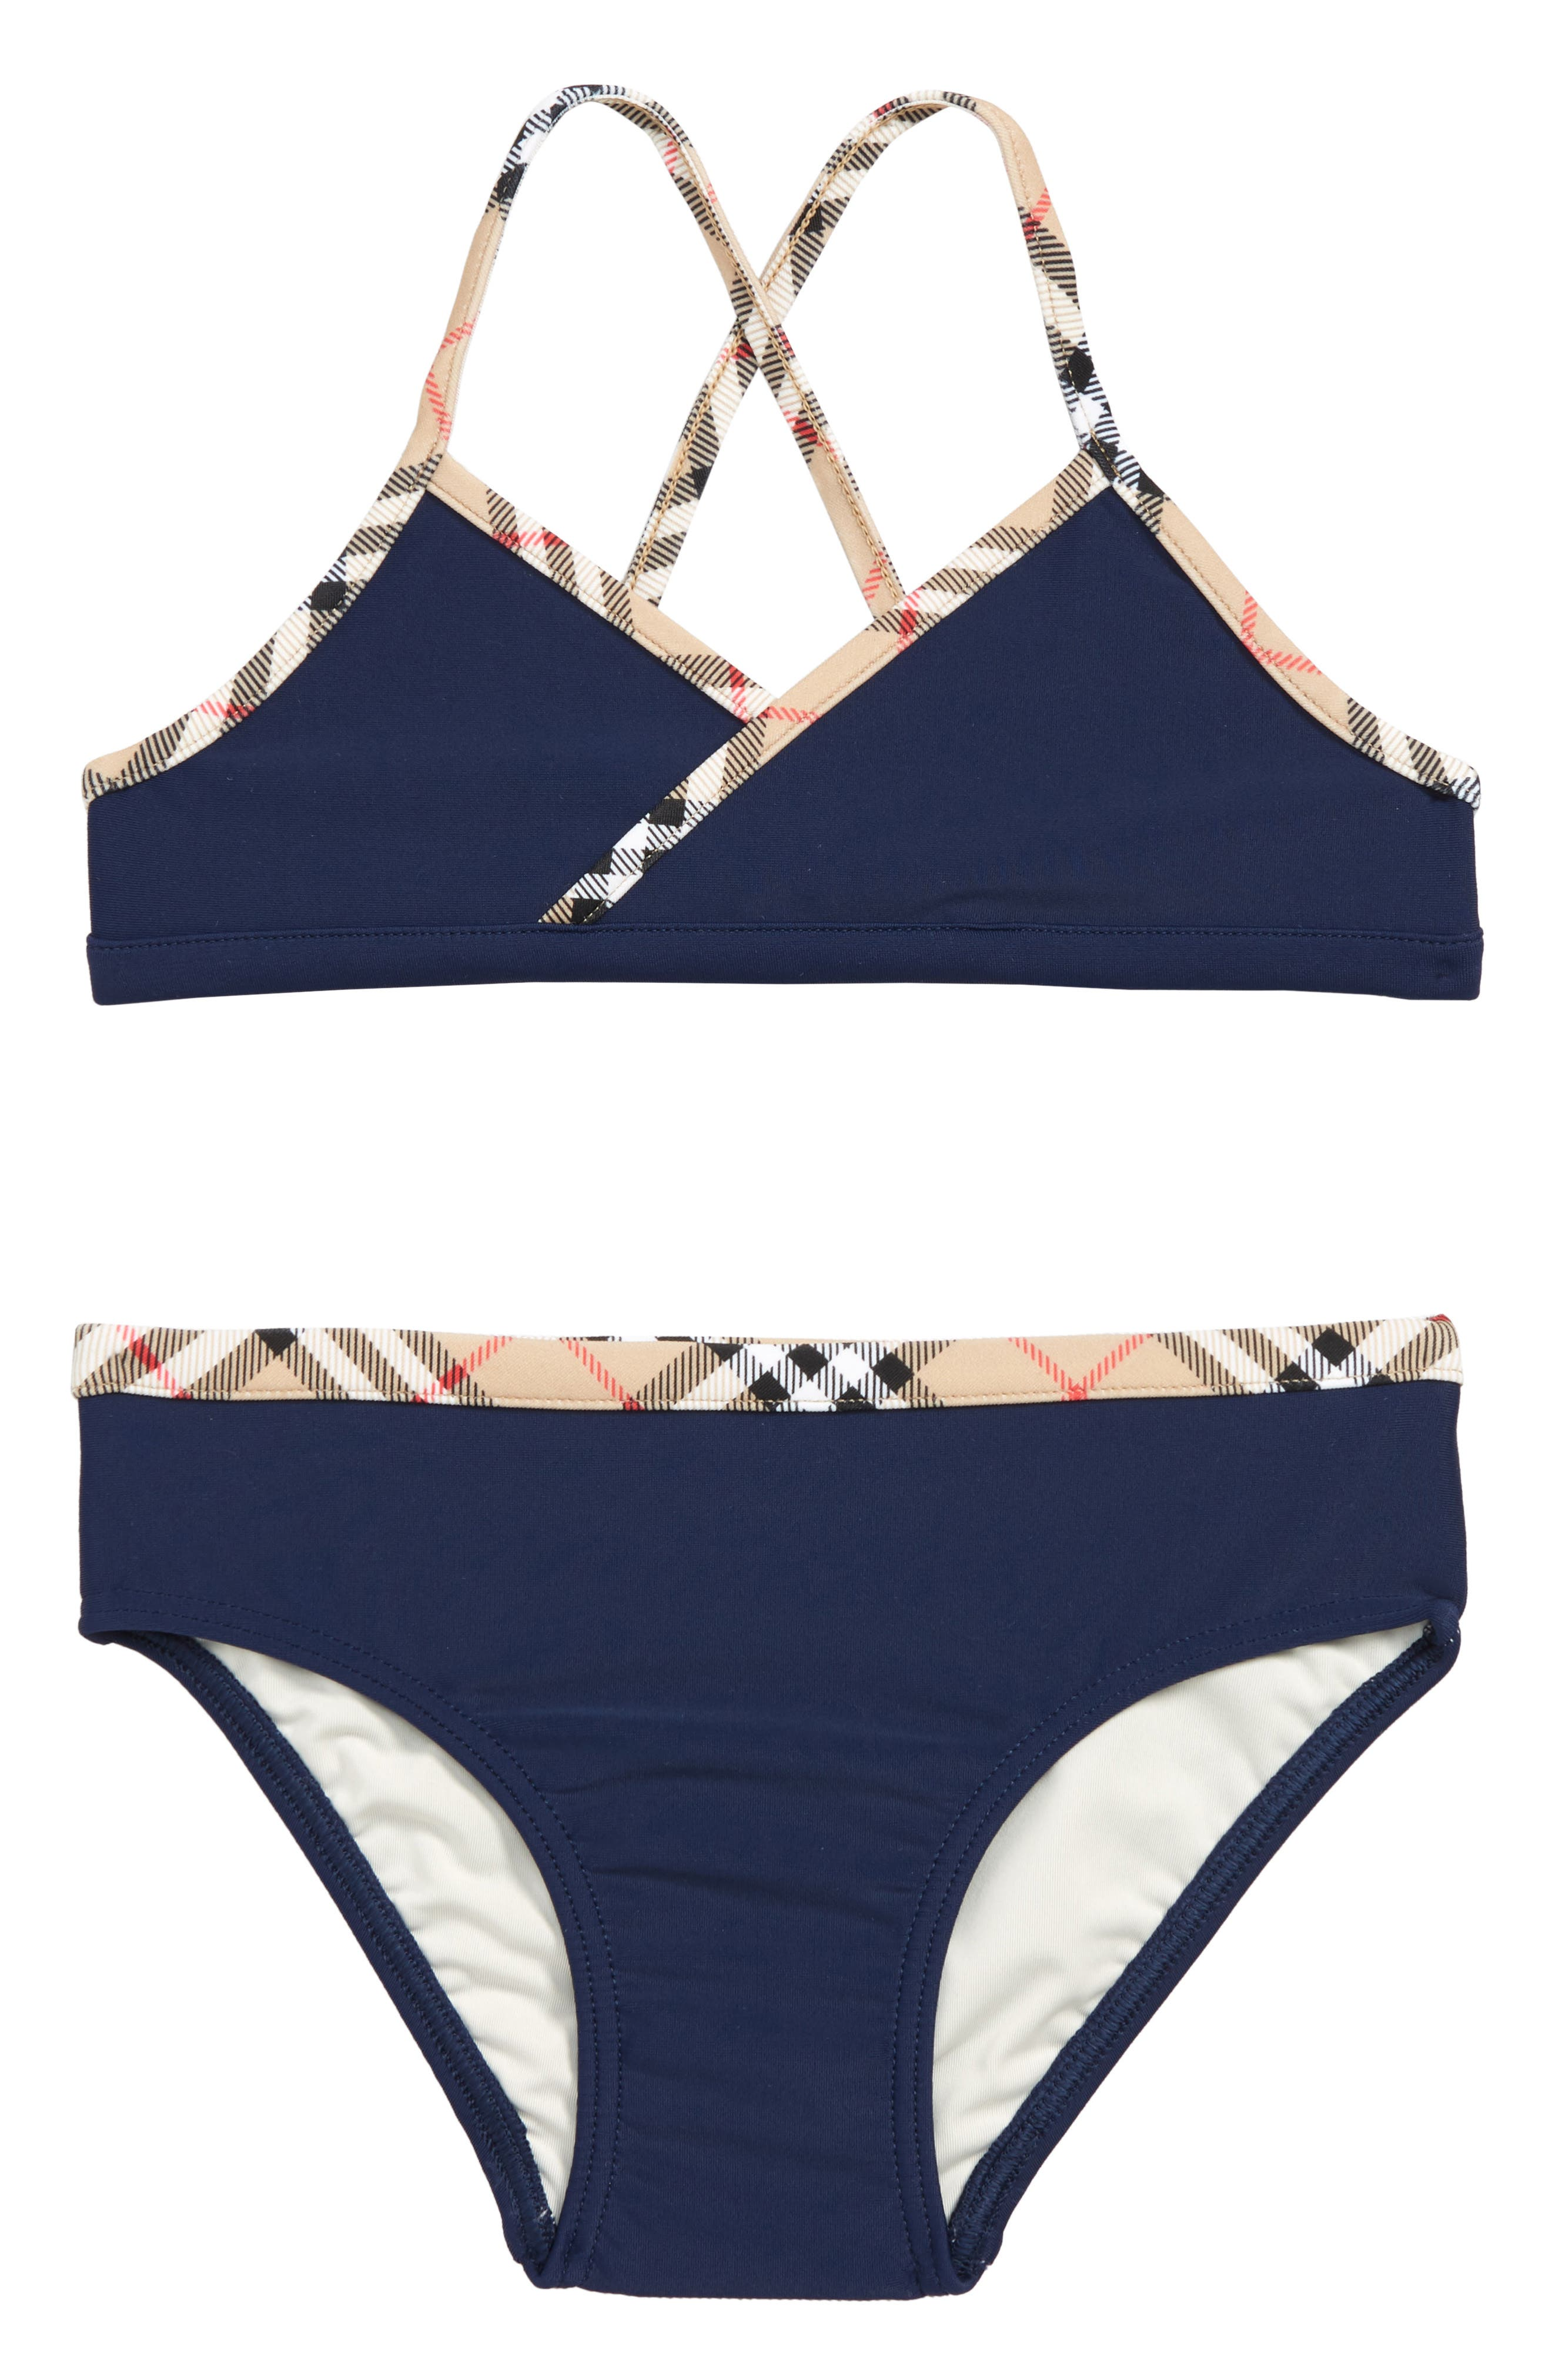 BURBERRY, Crosby Two-Piece Swimsuit, Main thumbnail 1, color, 400